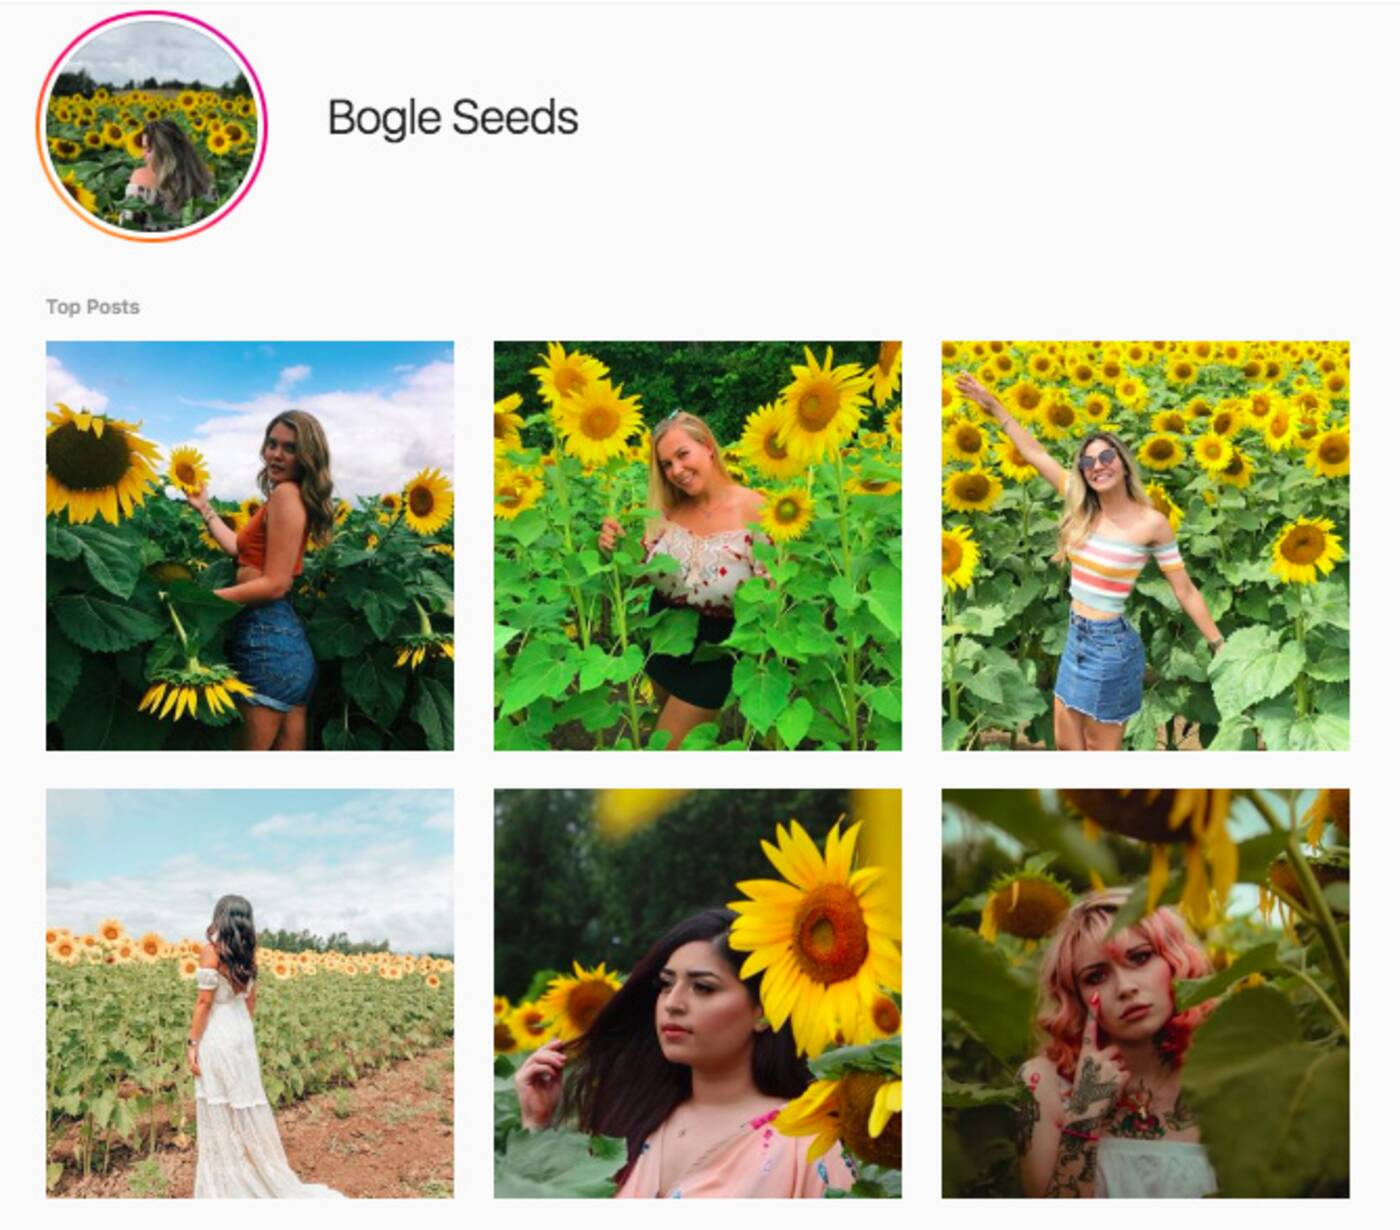 bogle seeds tourists